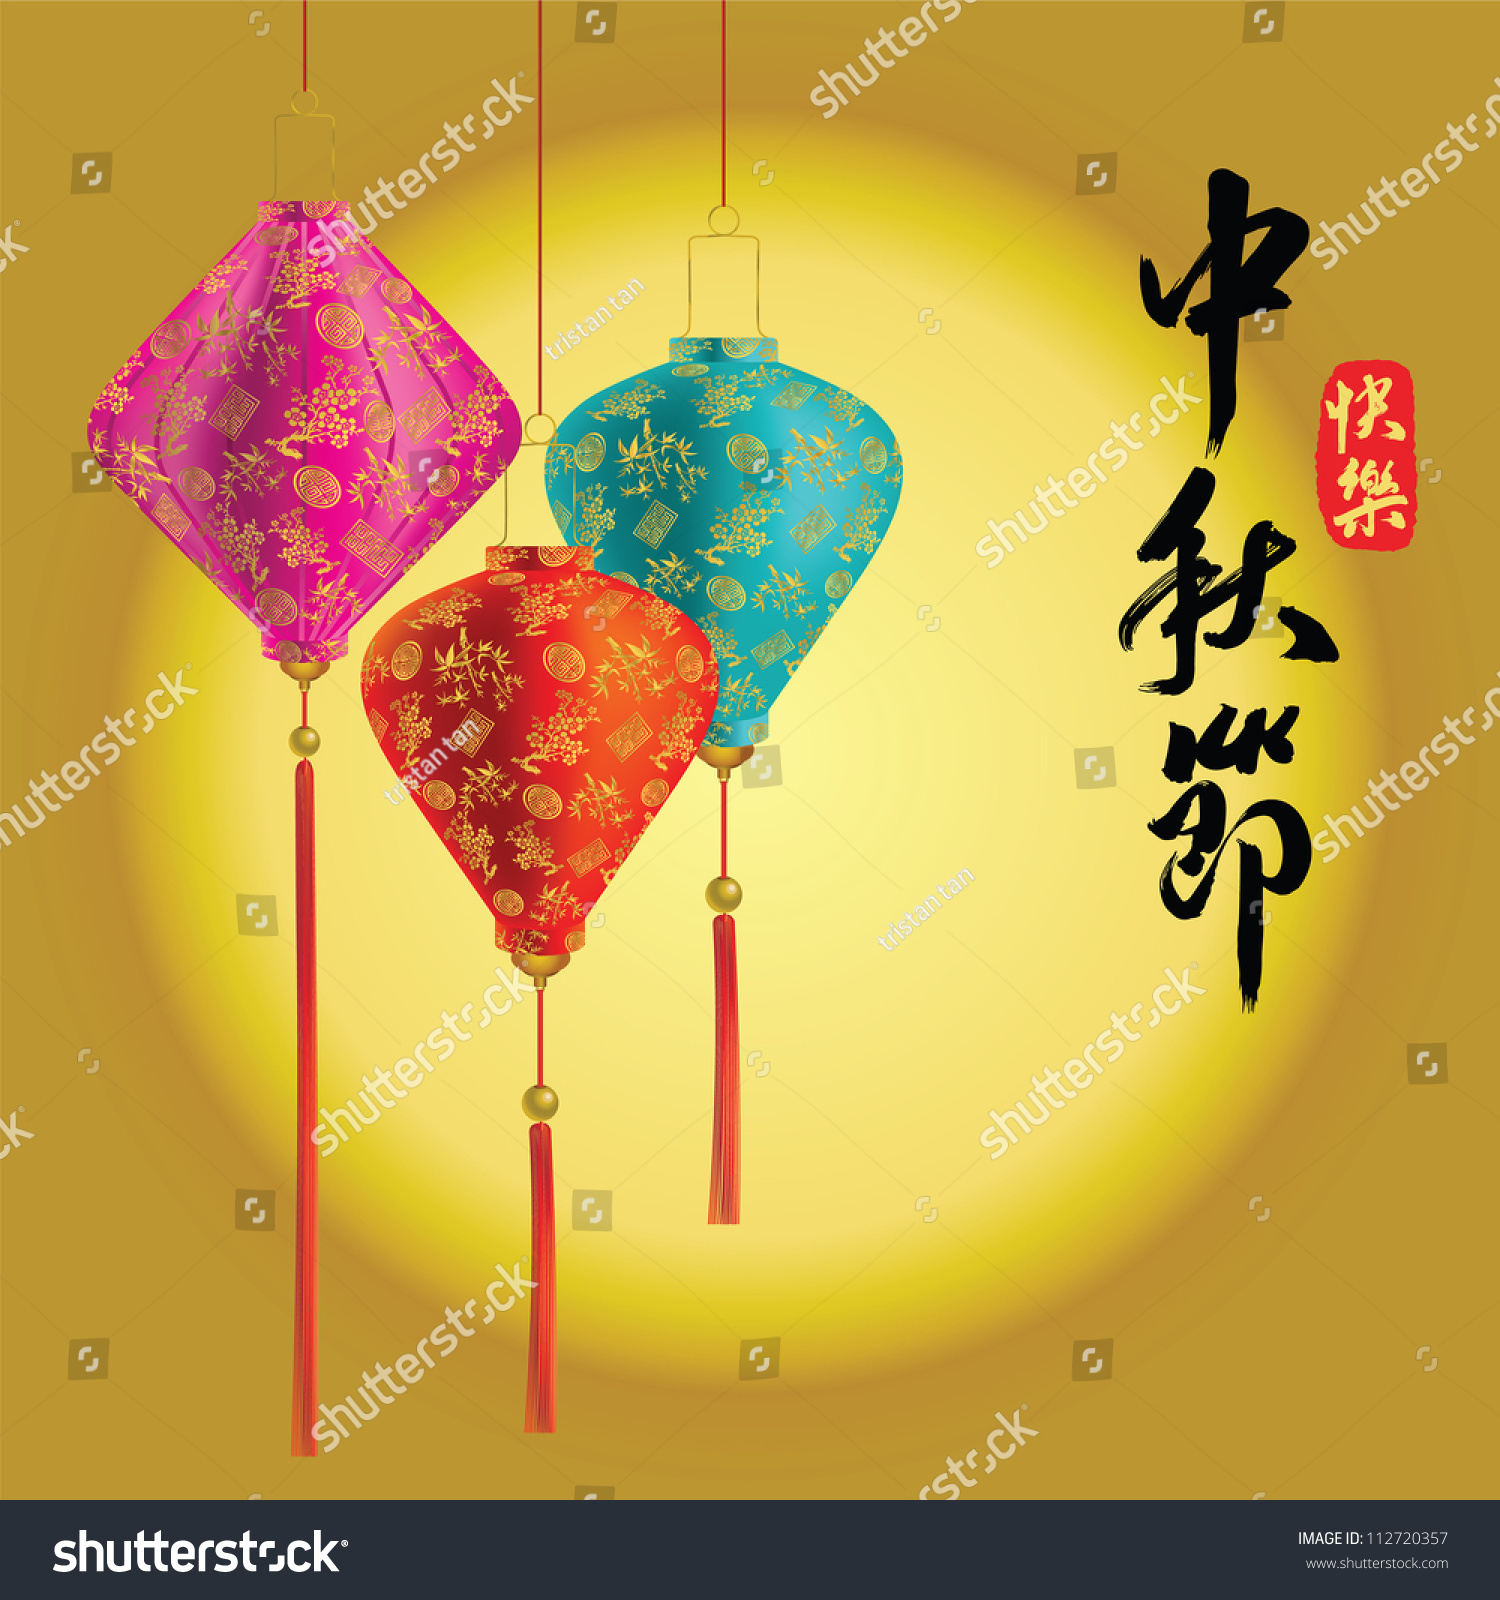 mid autumn festival english translation Translation of mid autumn festival in french translate mid autumn festival in french online and download now our free translator to use any time at no charge.